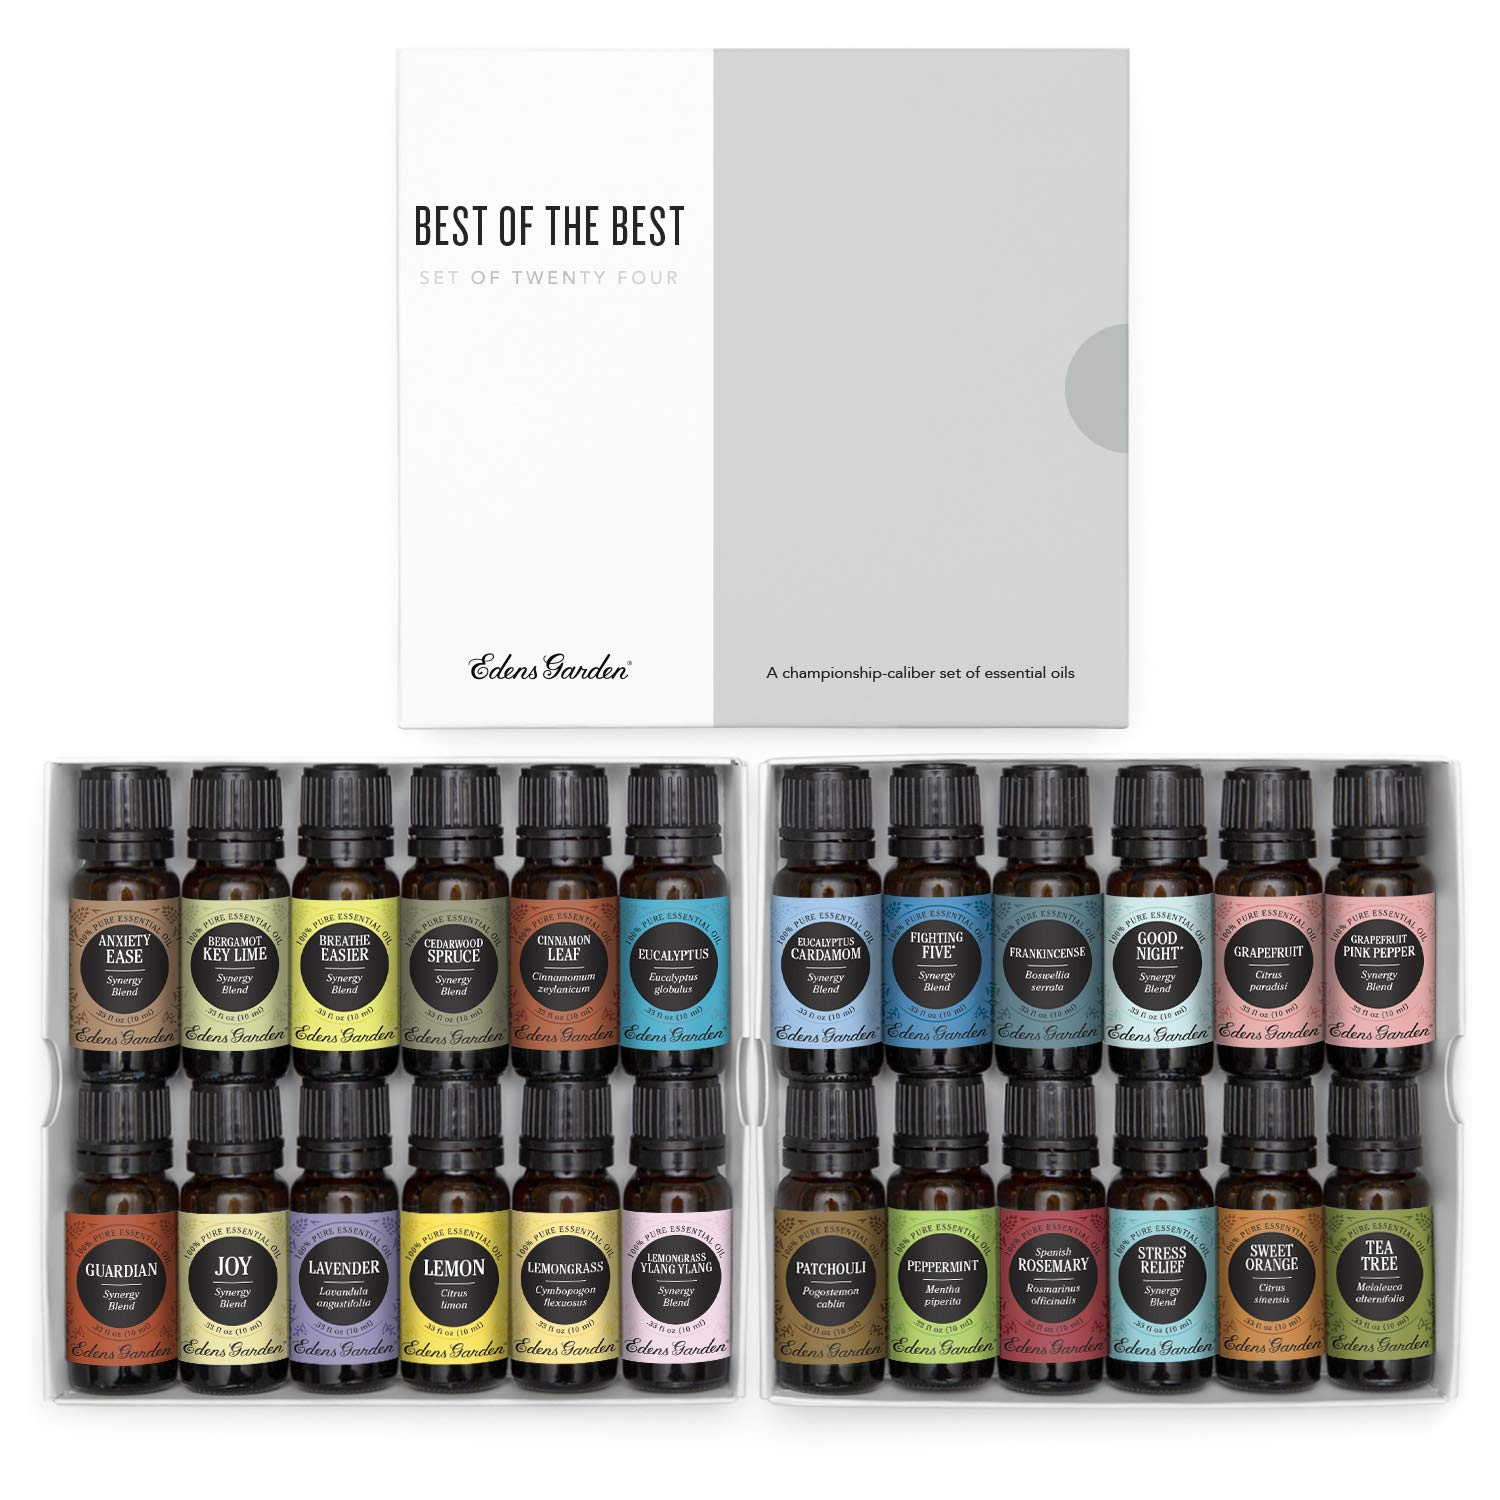 Edens Garden Best Of The Best Essential Oil 24 Set, Best 100% Pure Aromatherapy Beginners Kit (For Diffuser & Therapeutic Use), 10 ml